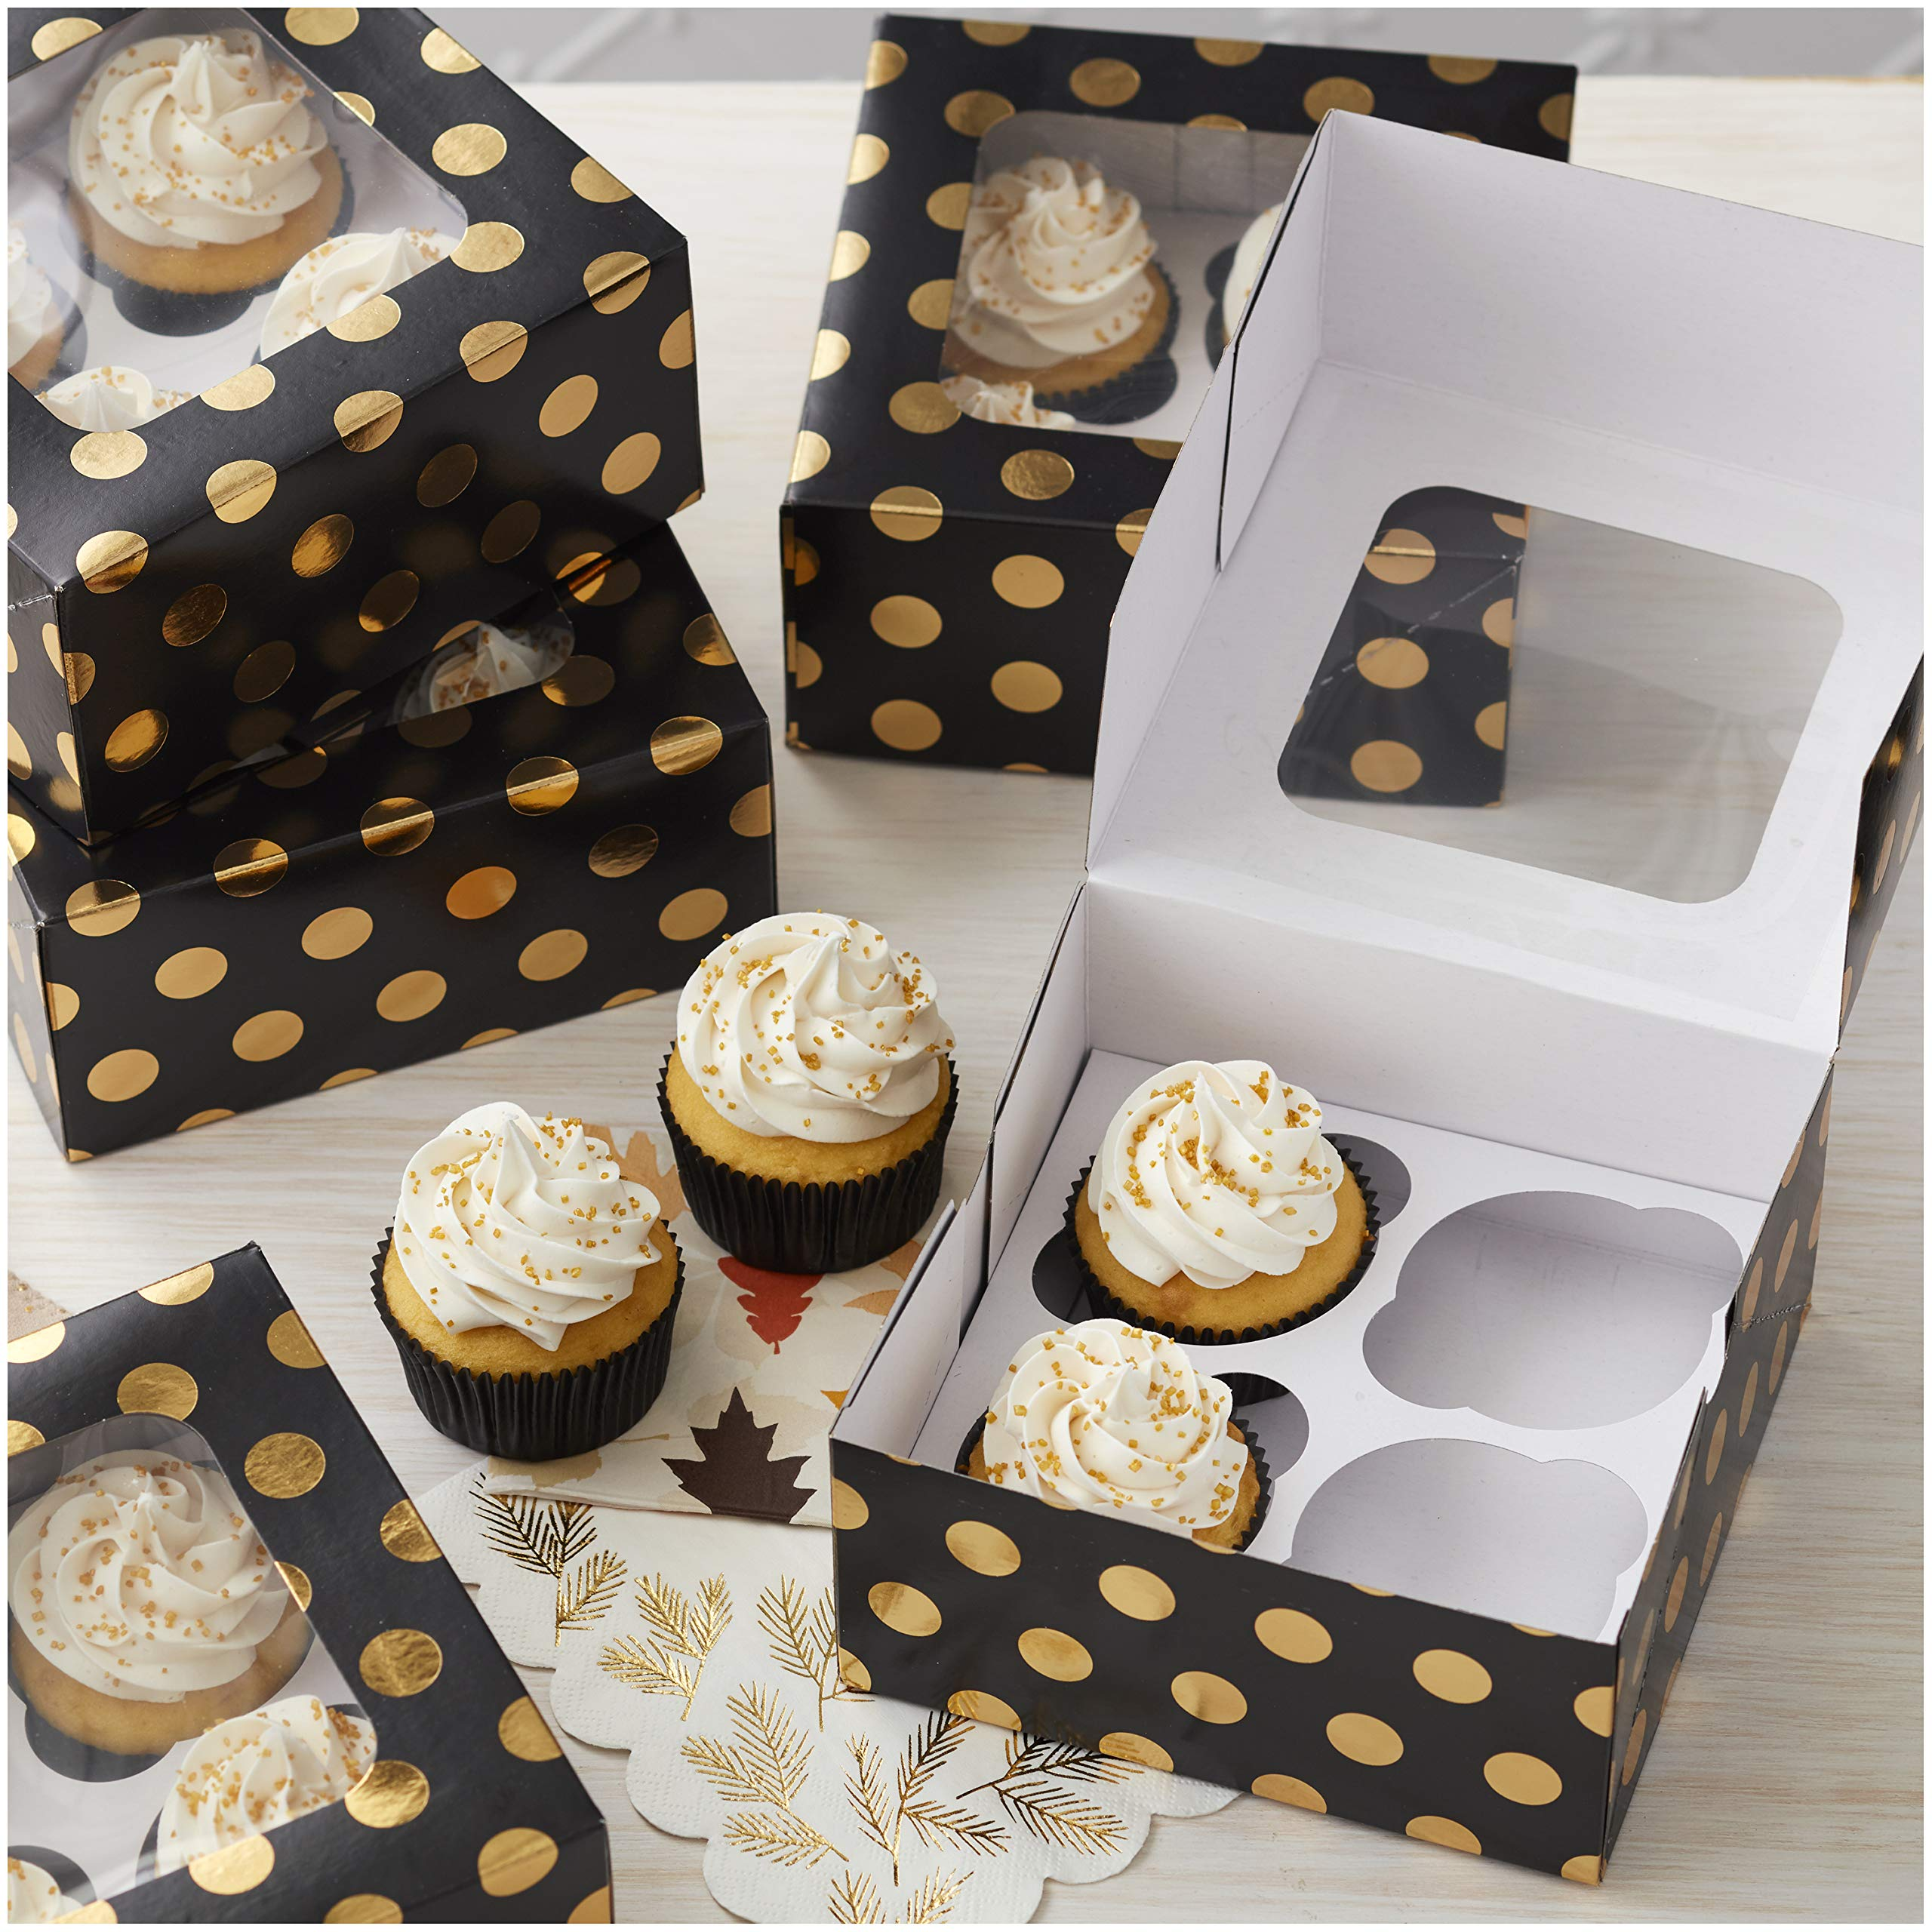 Wilton Autumn Black and Gold Dot Cupcake Boxes, 9-Count by Wilton